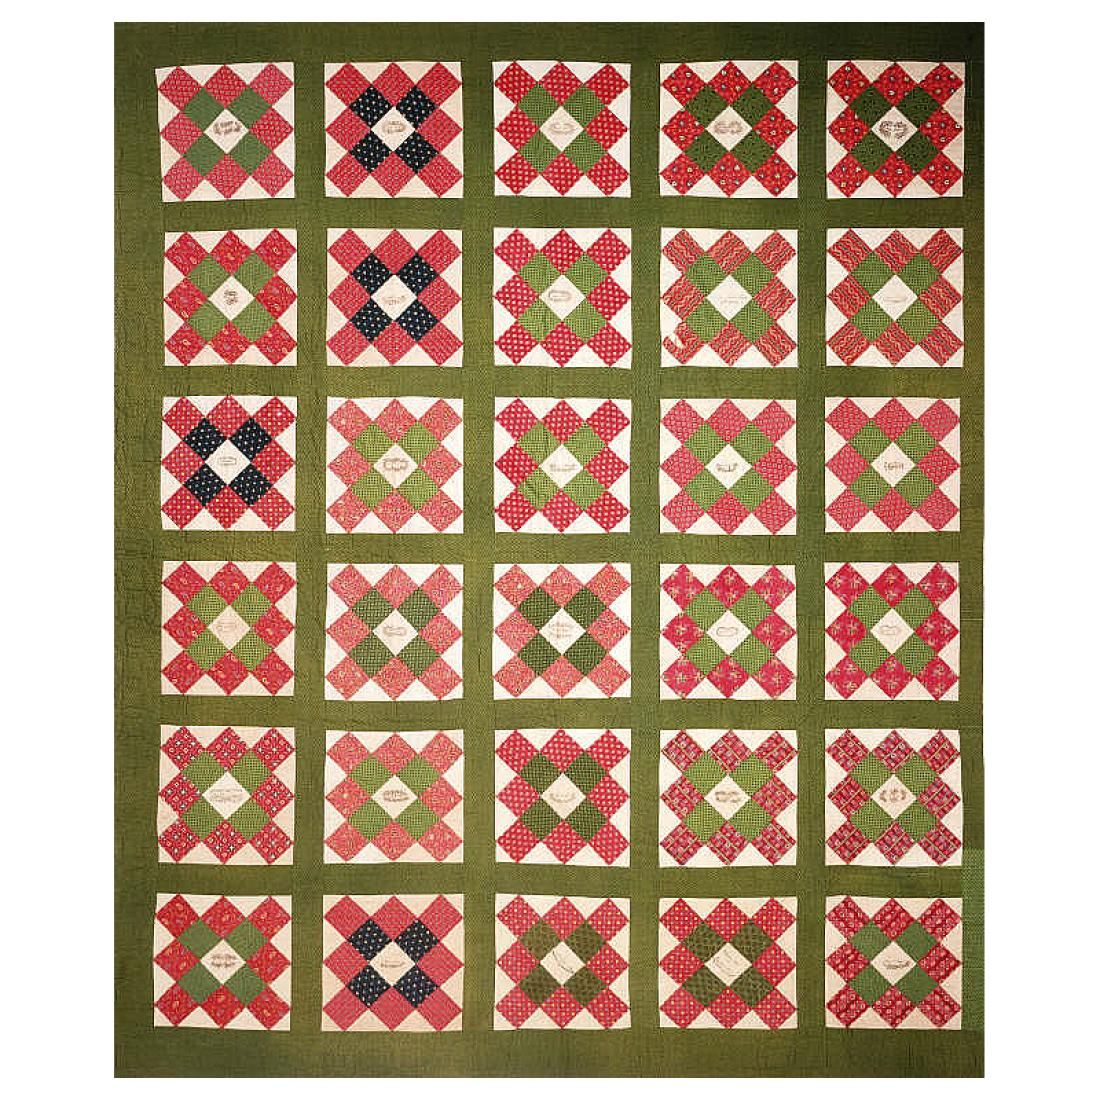 Collections | Cornell University | red and green applique quilts ...